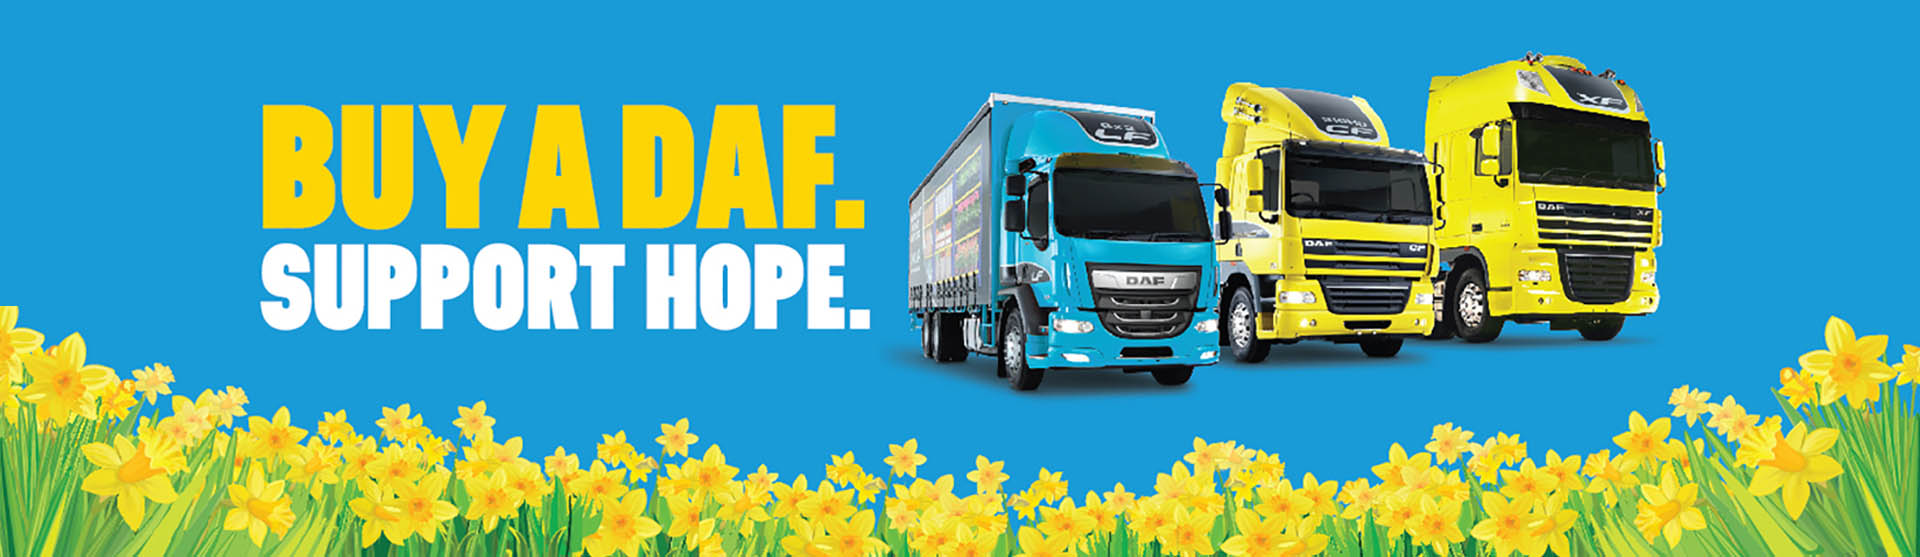 Buy a DAF Support Hope